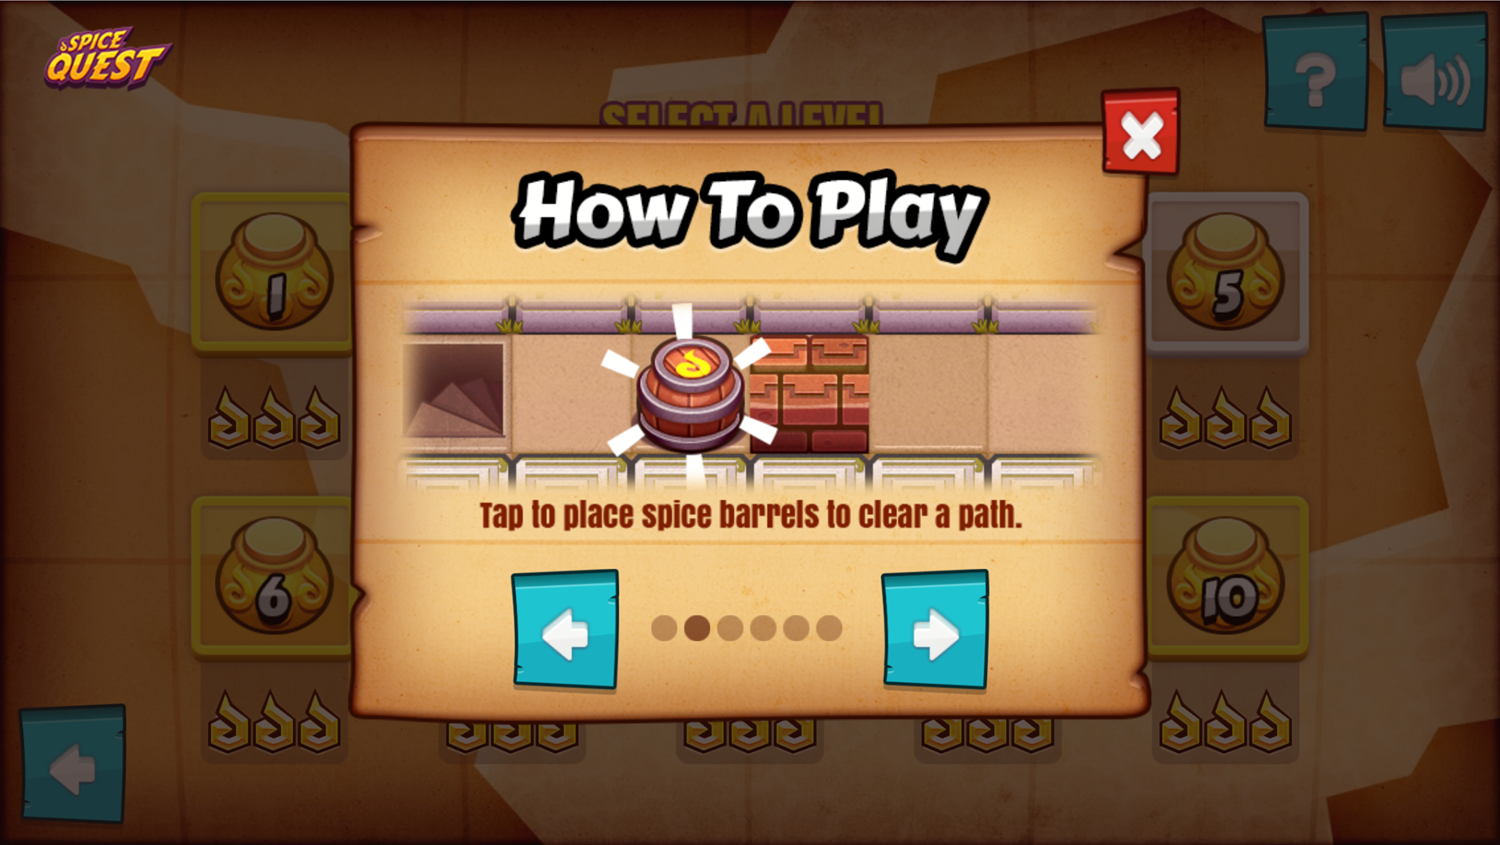 Spice Quest Game How to Play Screenshot.